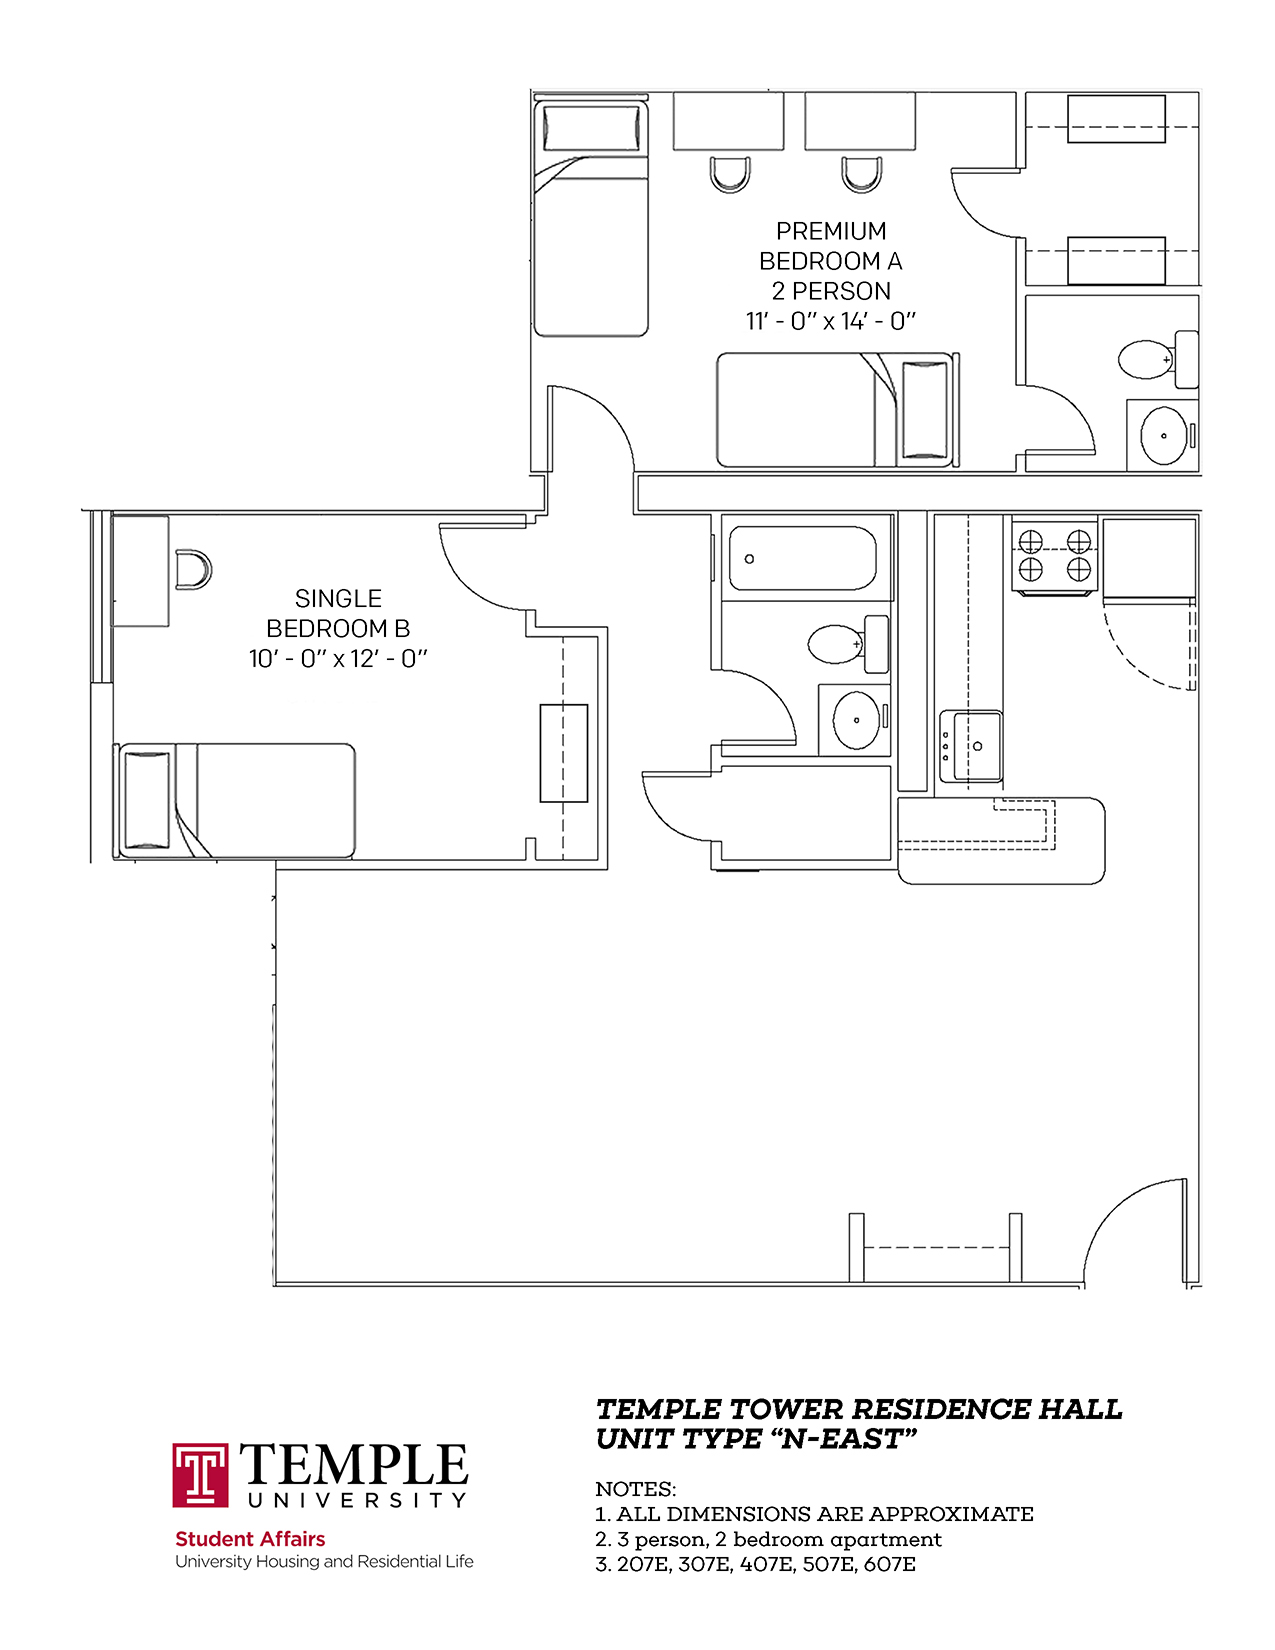 Temple Towers: Unit N East - 3 person, 2 bedroom Apartment